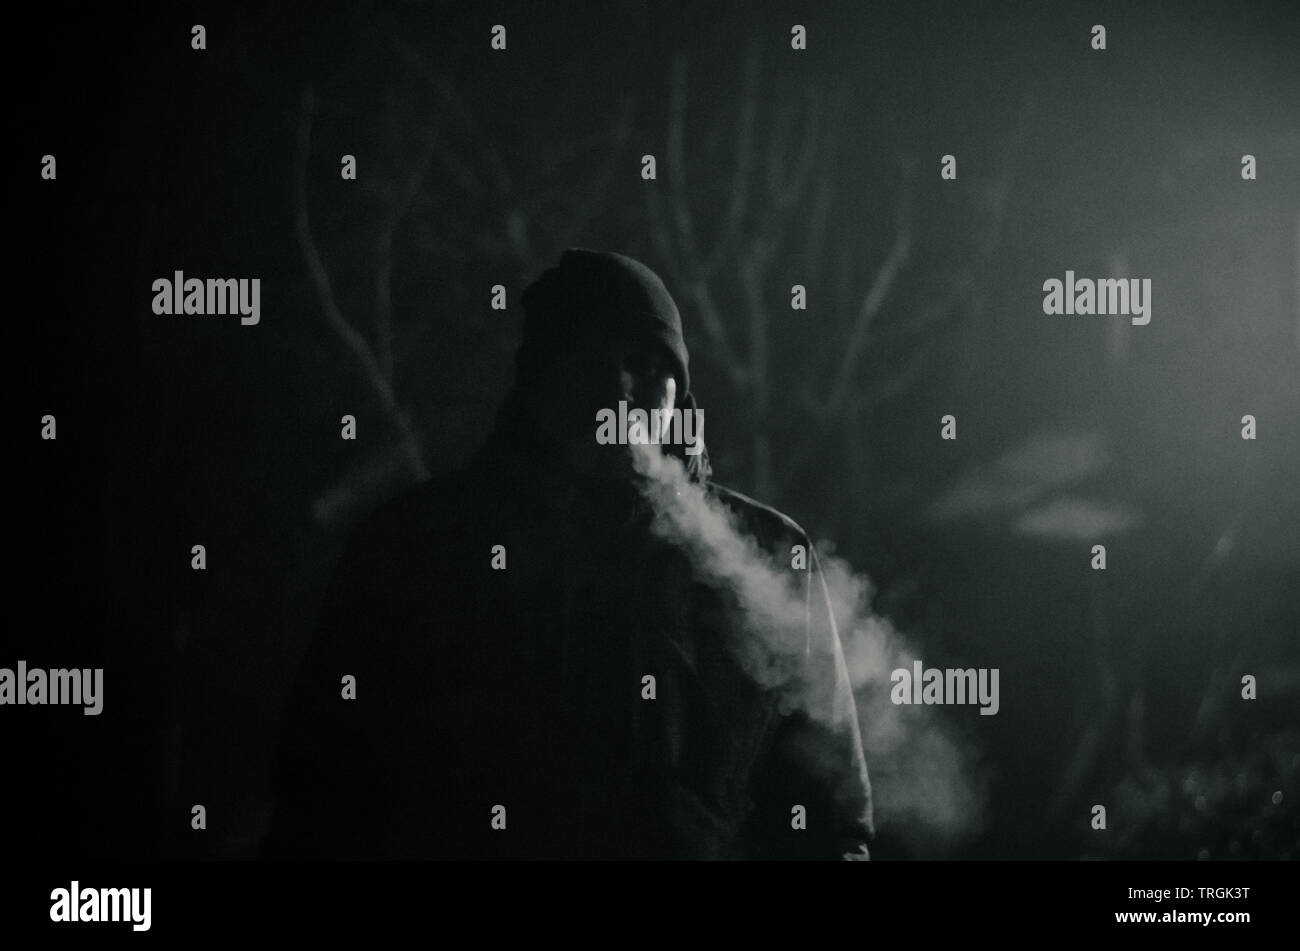 man silhouette smoking like chimney at night with backlight - Stock Image